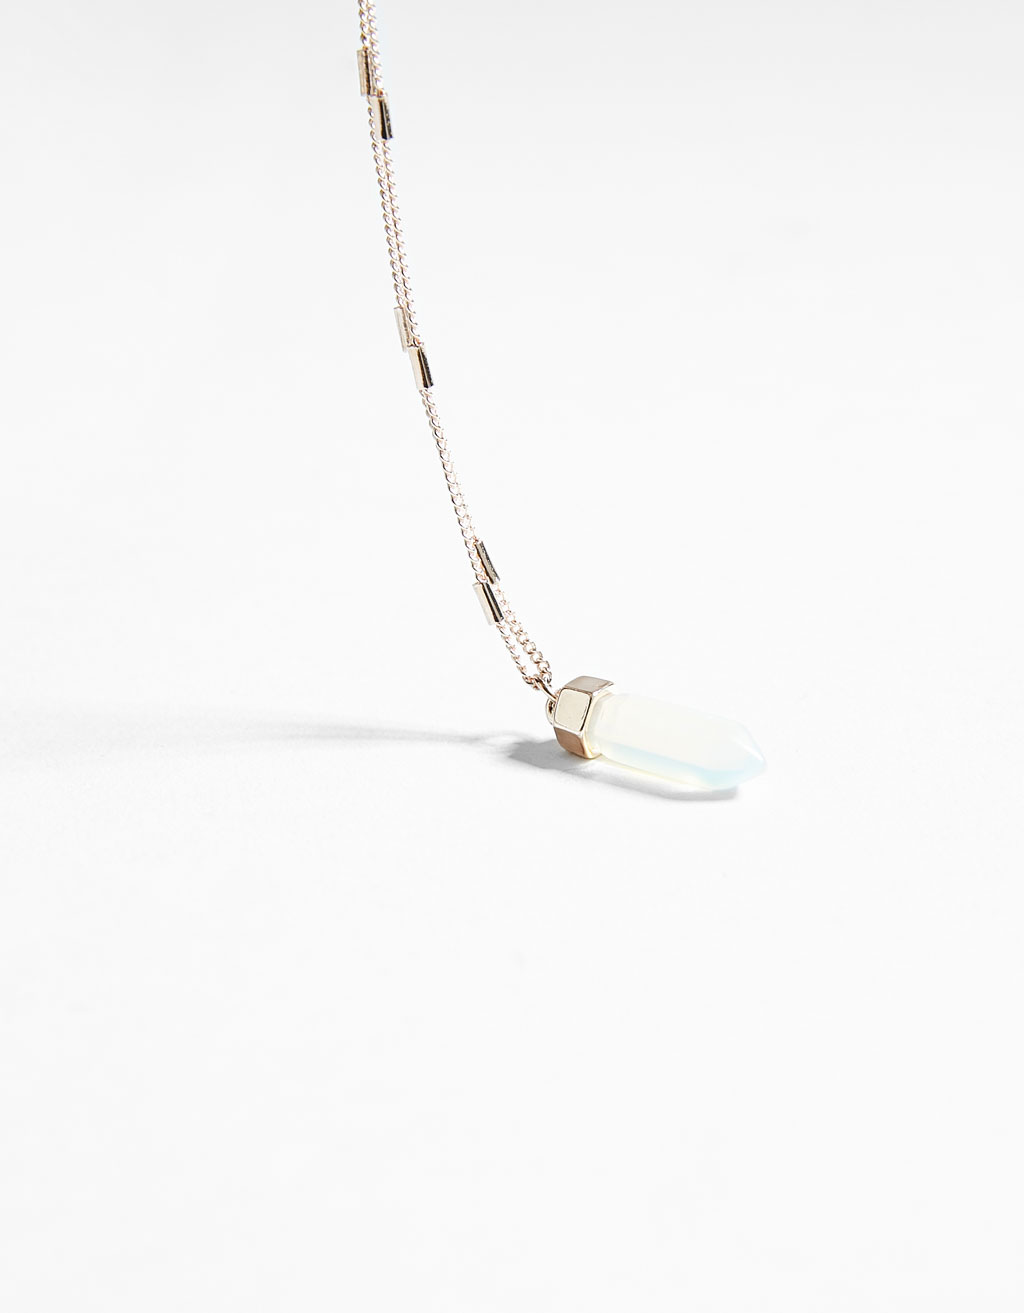 Necklace with transparent stone pendant